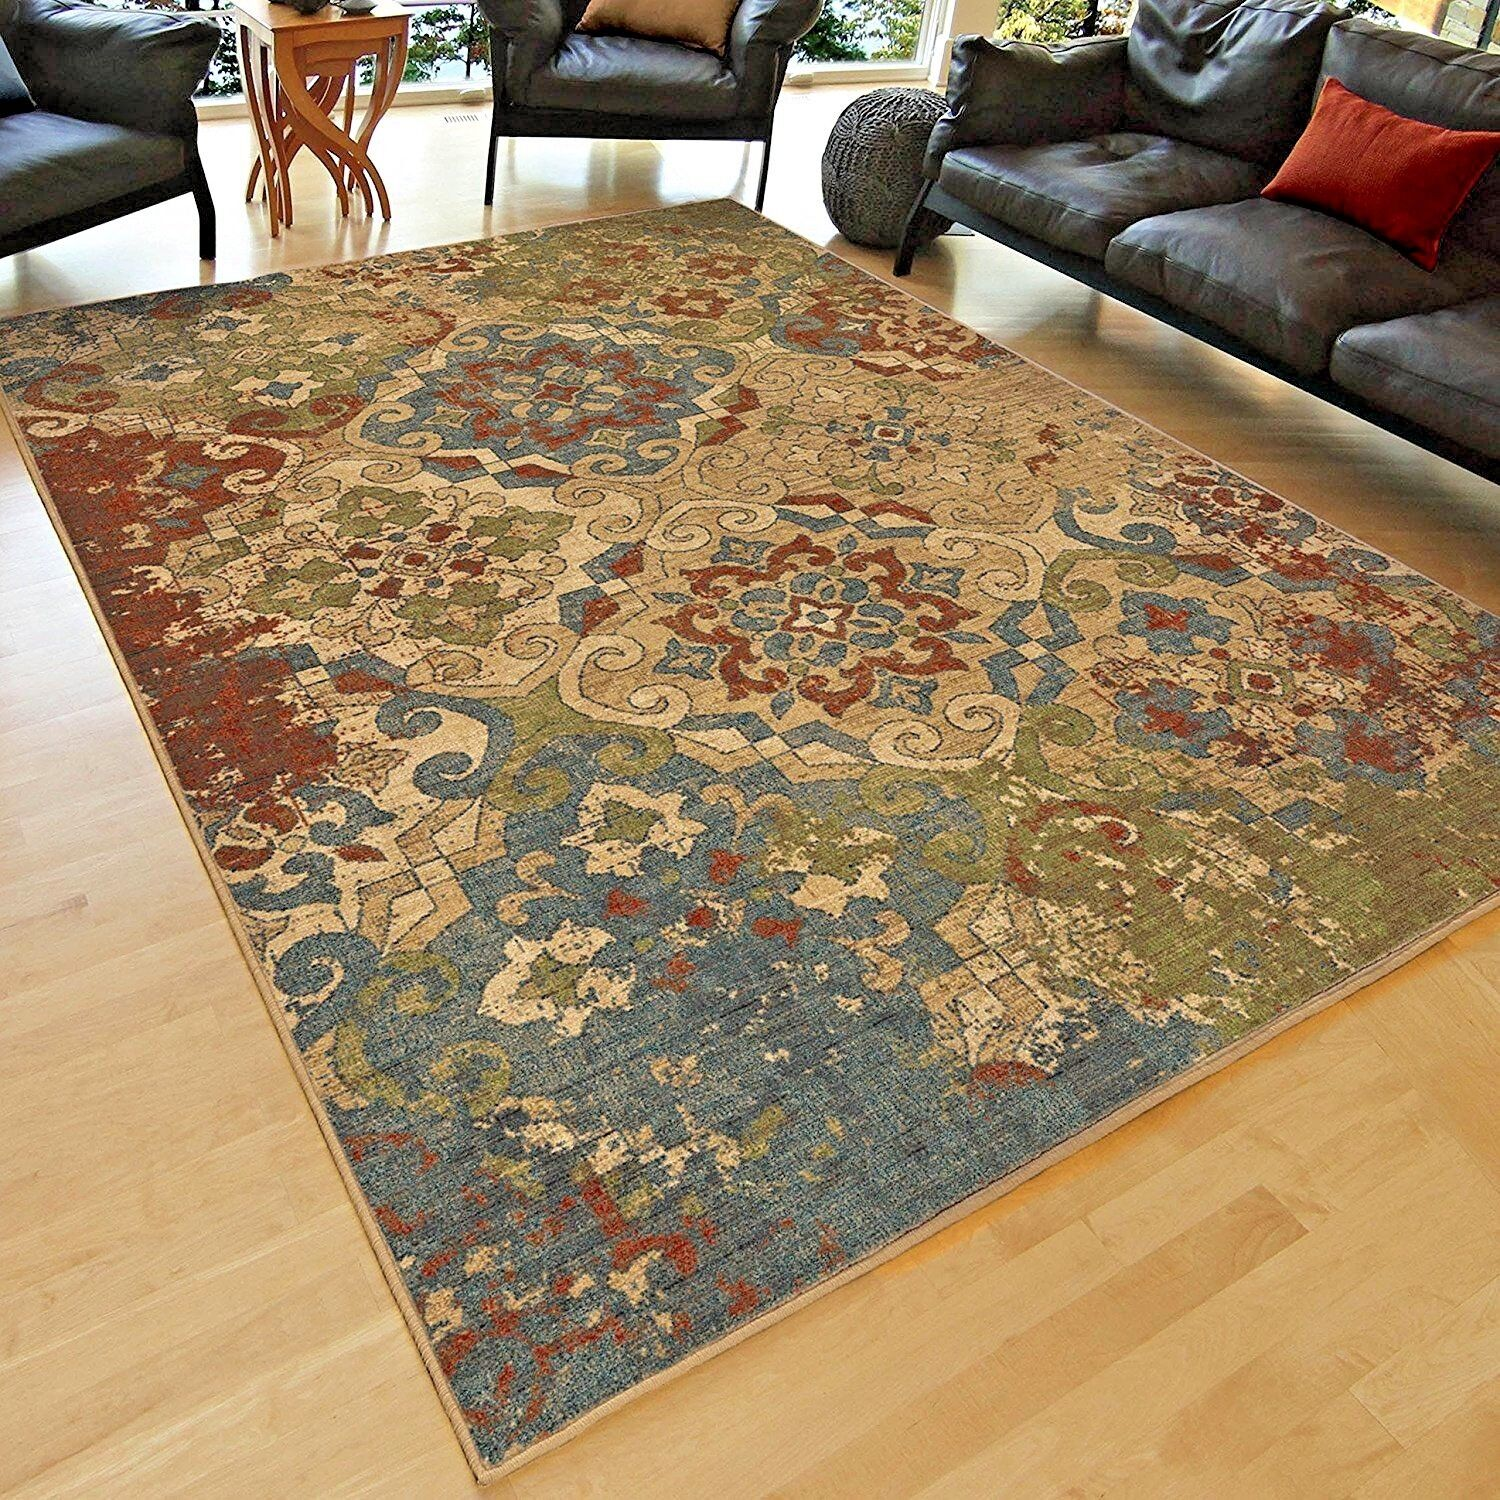 Rugs Area Rugs Carpet 8x10 Area Rug Floor Modern Large Living Room